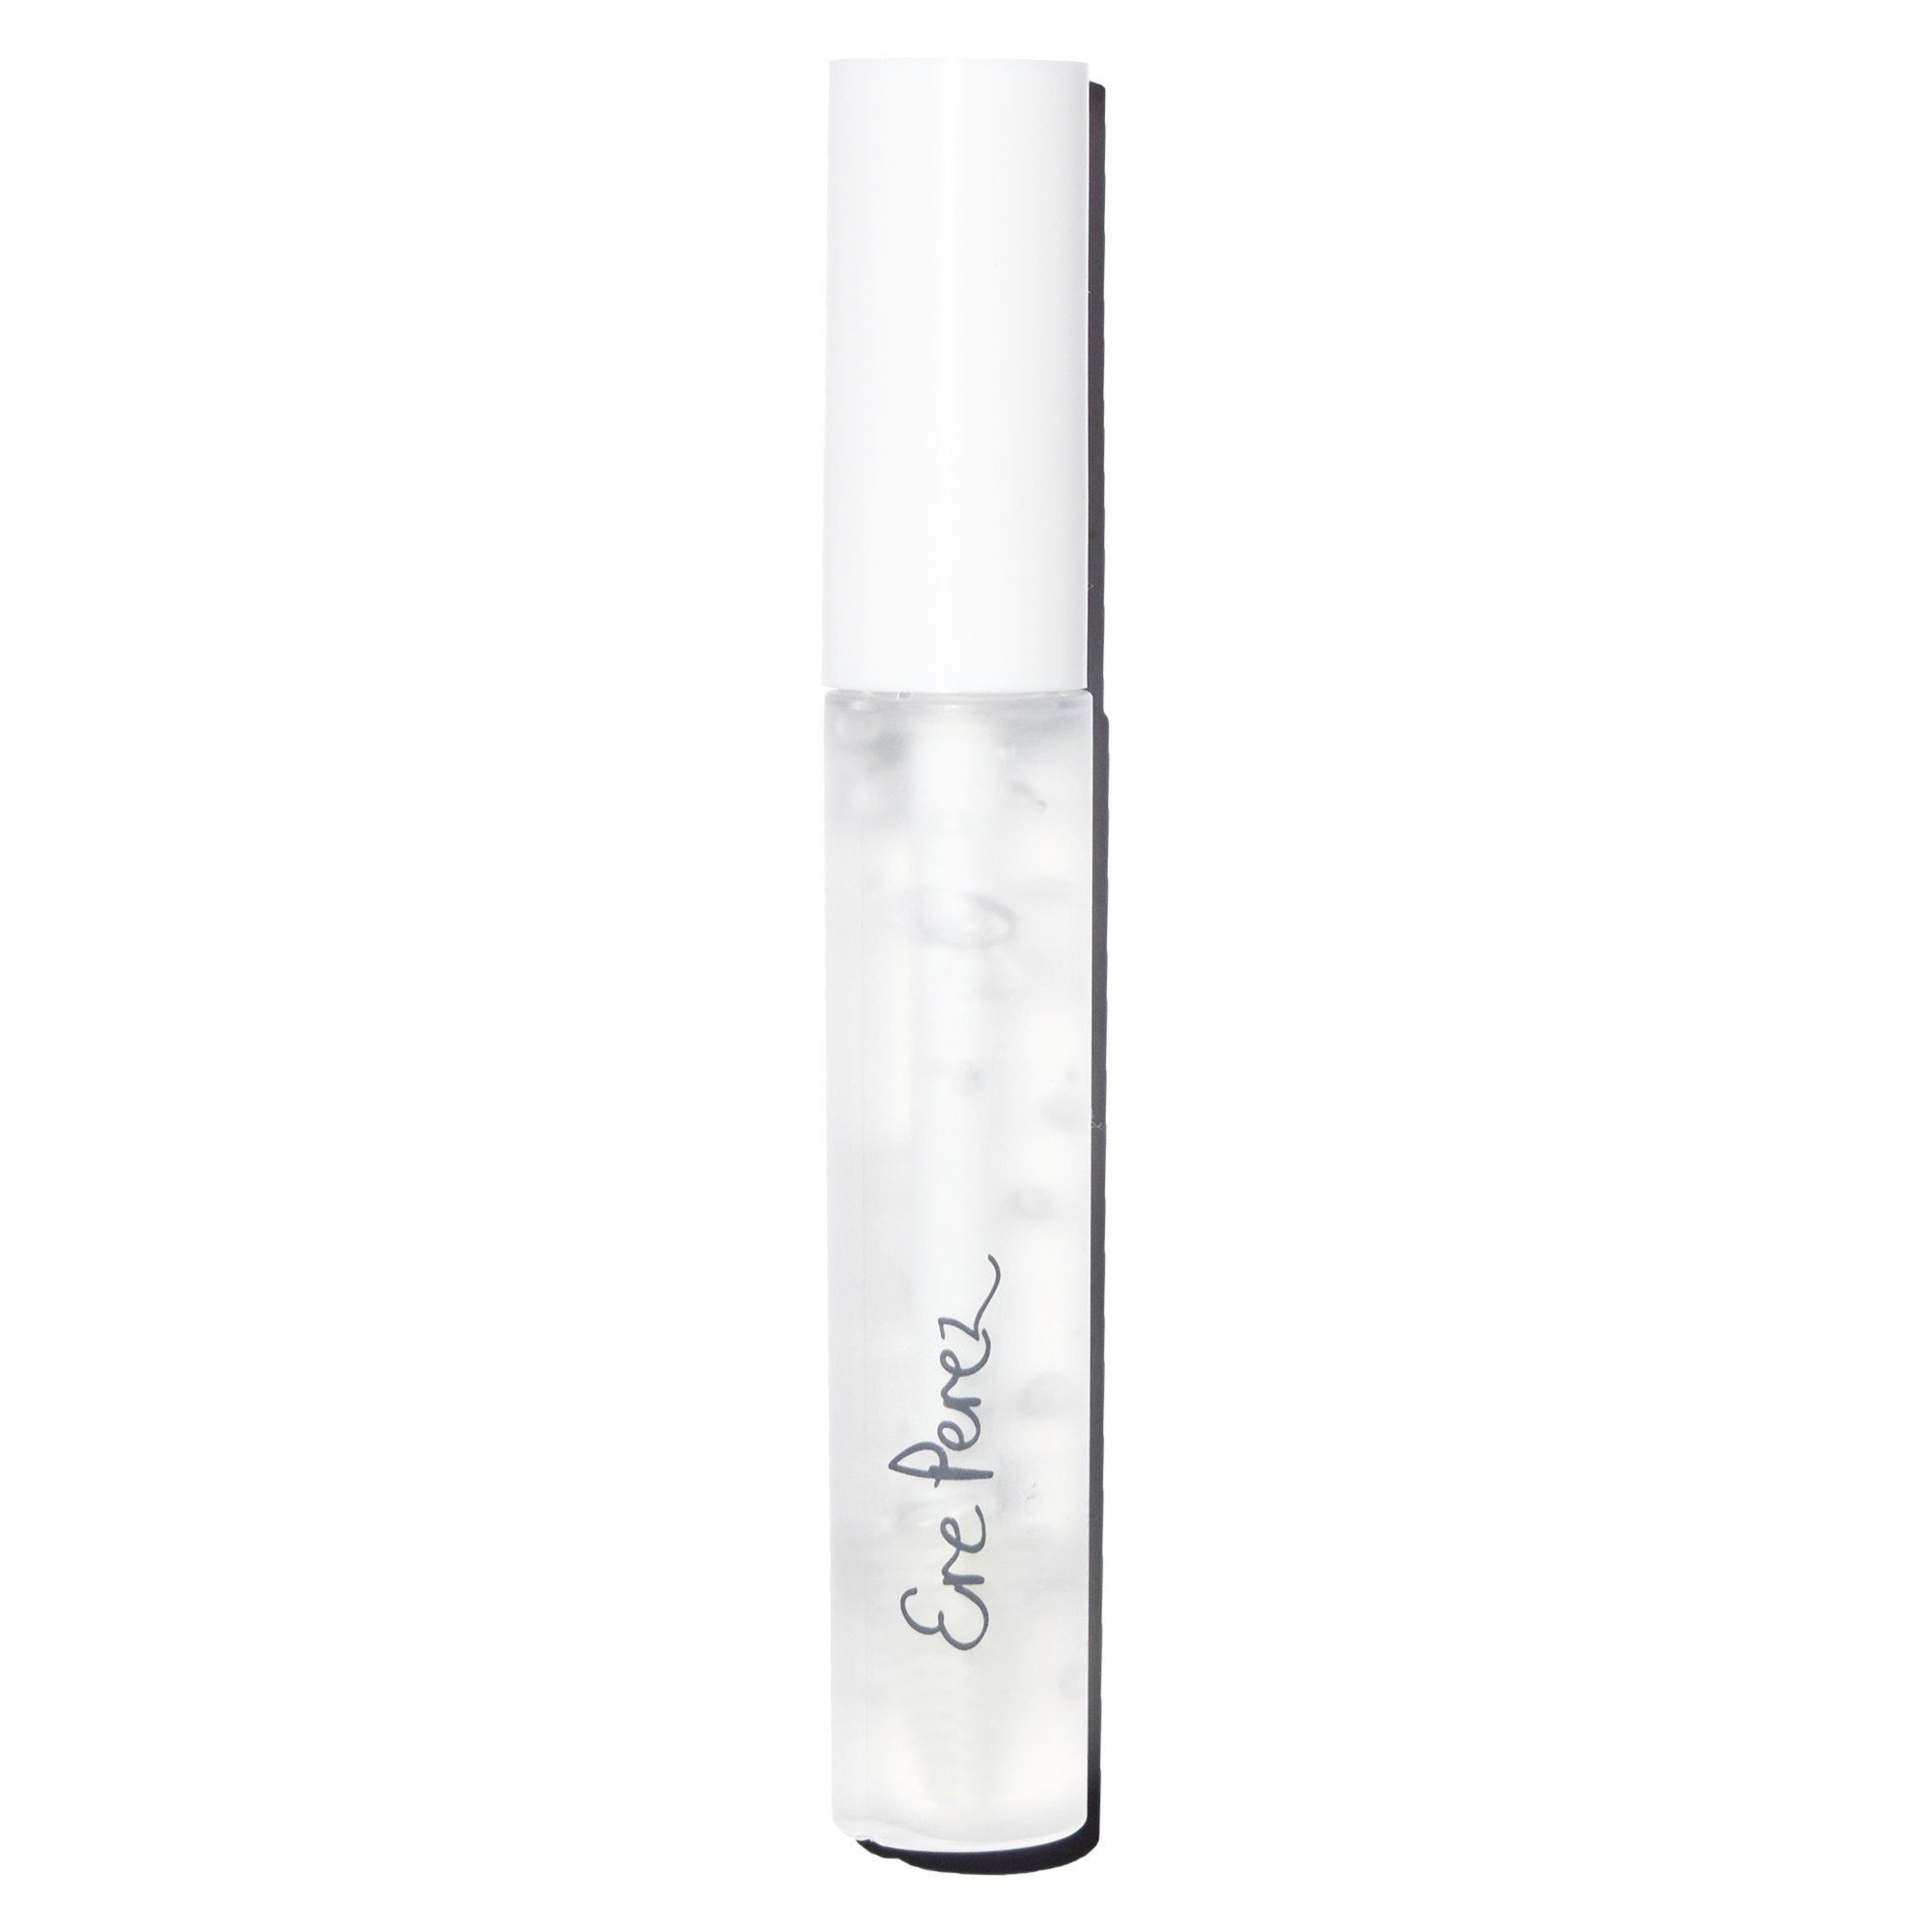 Ere Perez Aloe Gel Lash and Brow Mascara